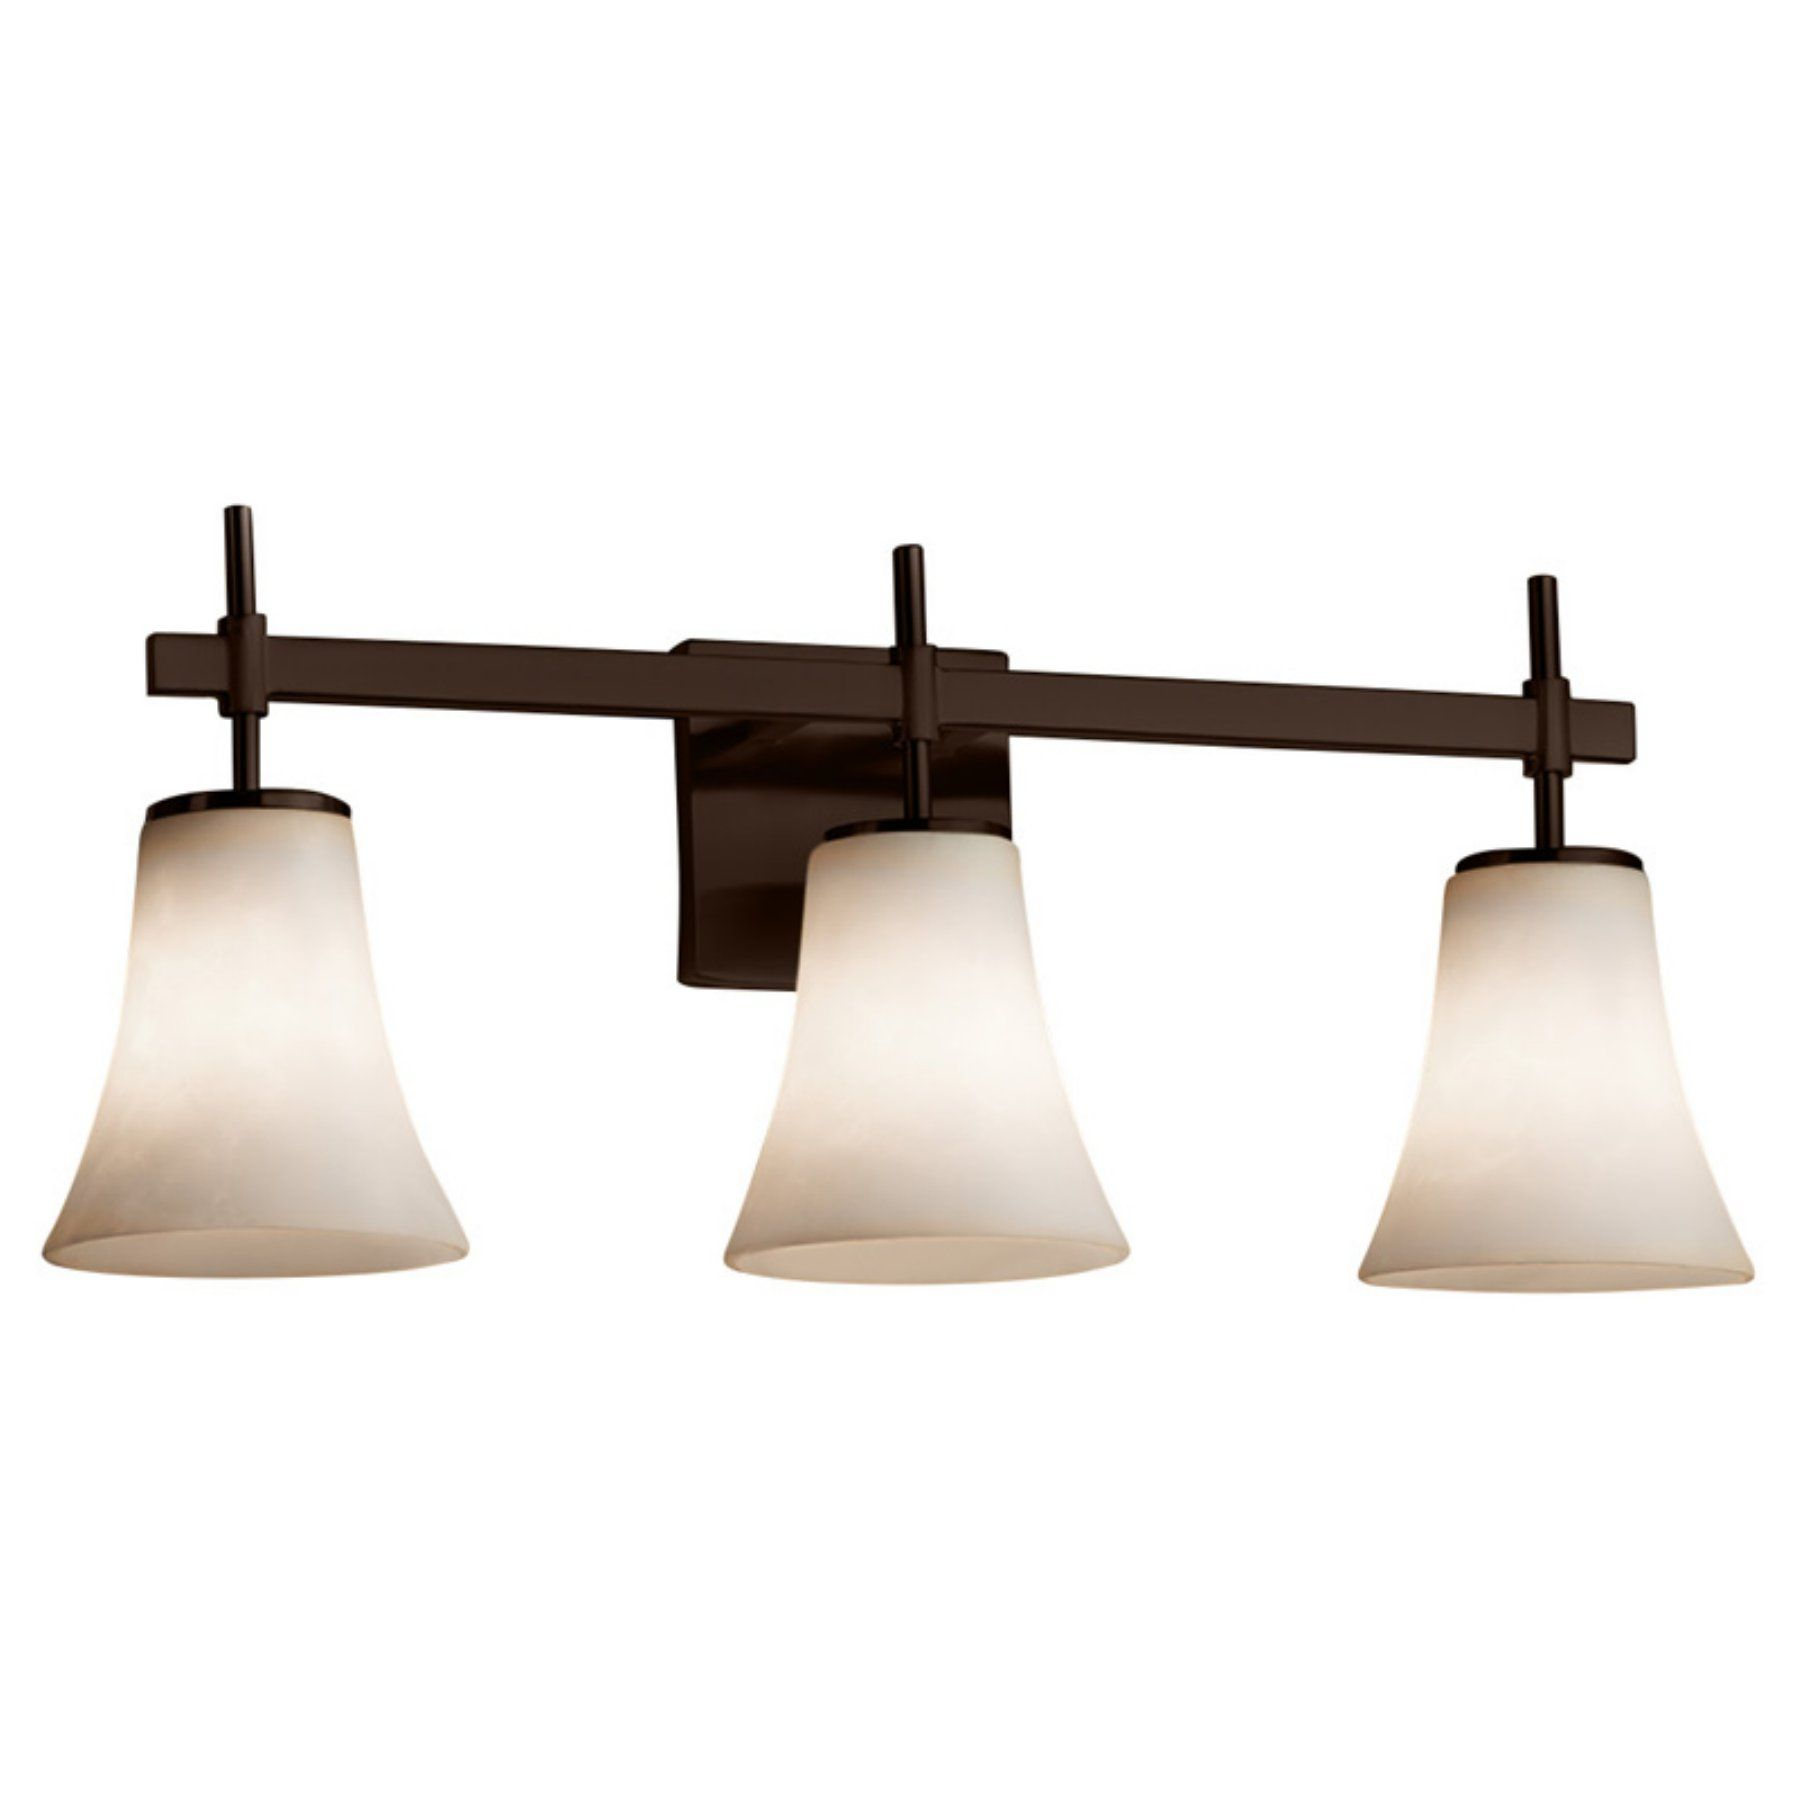 Justice Design Group Clouds Union CLD-8413-20 Bathroom Vanity Light ...